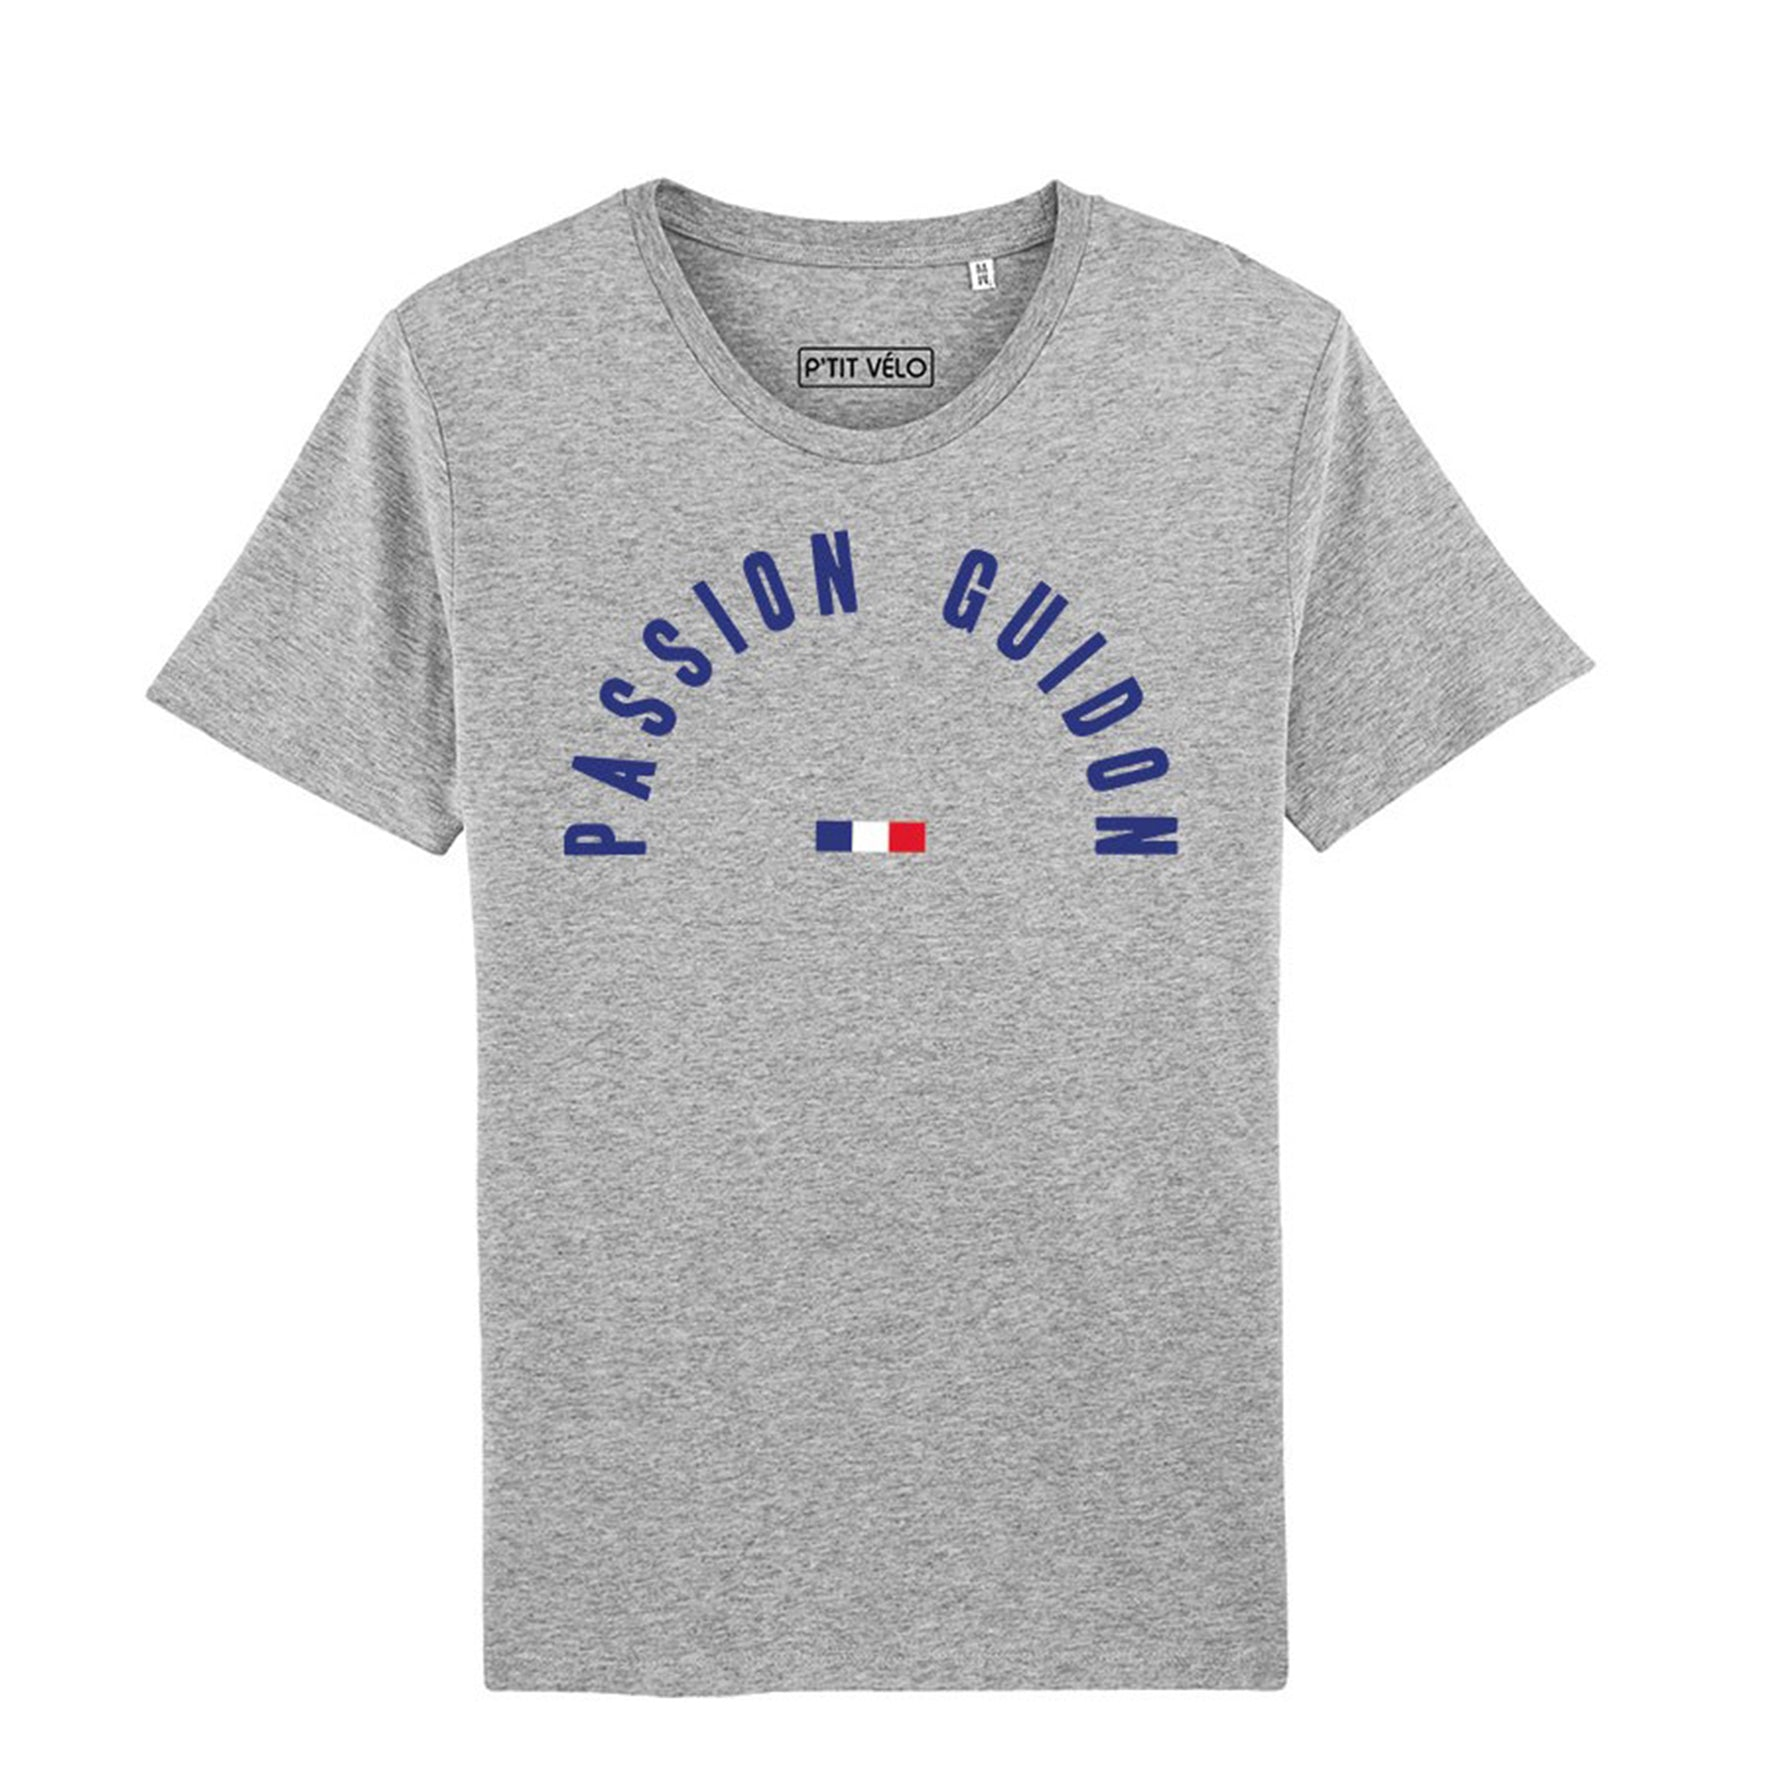 P'tit Vélo - T-shirt Passion Guidon - Gris Chiné